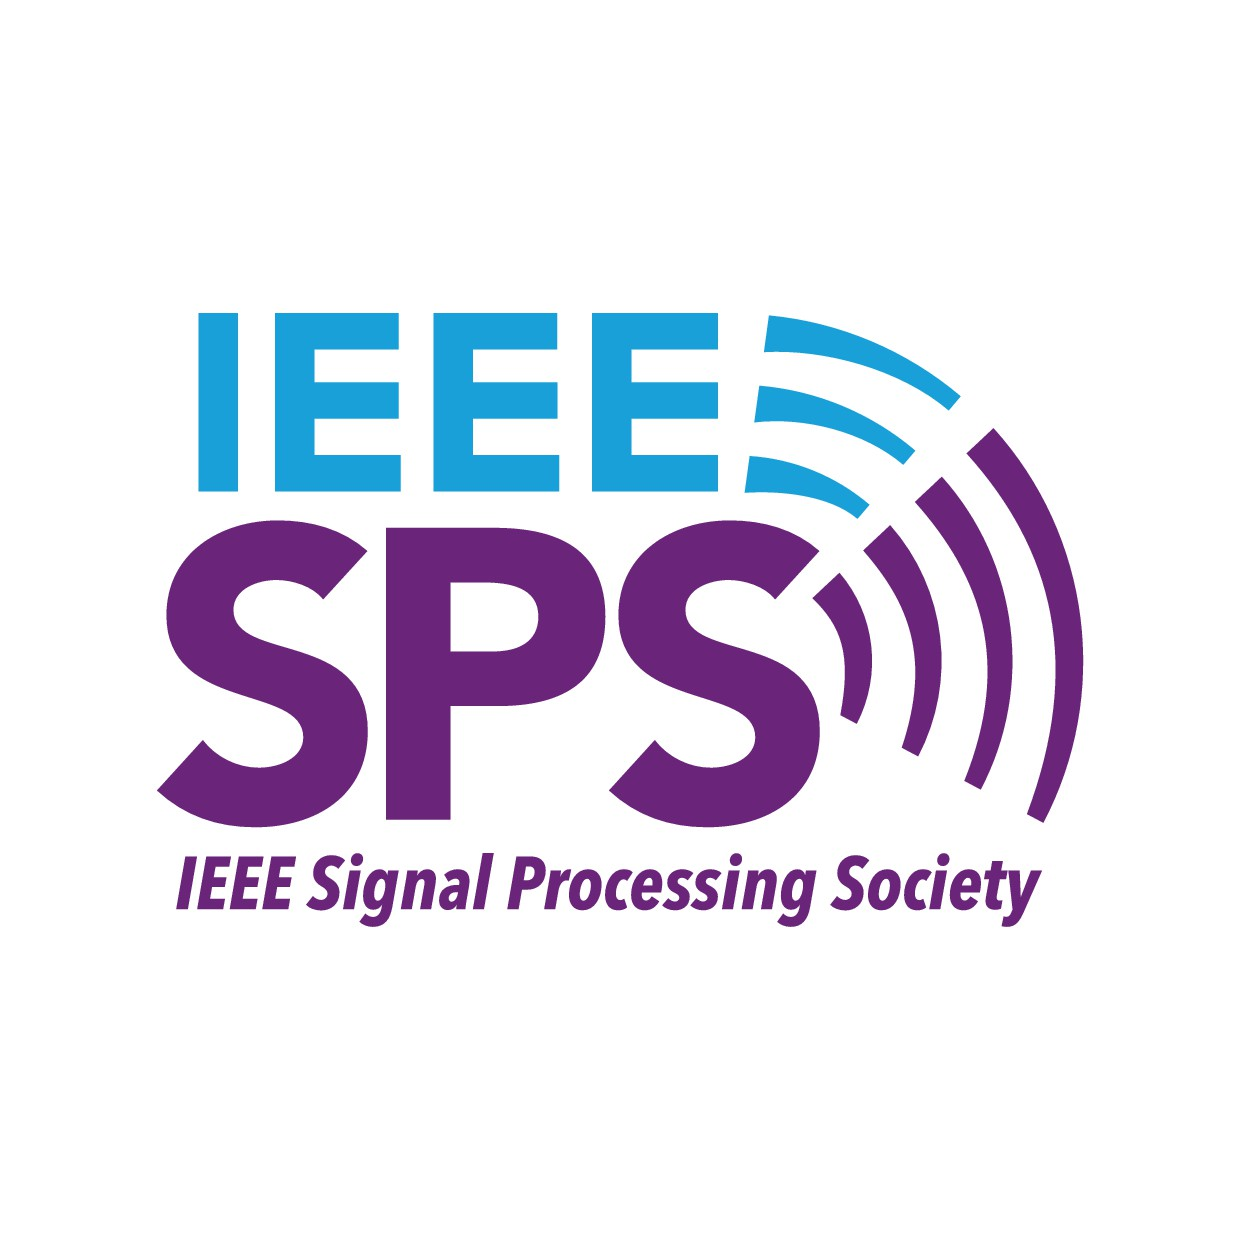 Design a Fresh, Forward-Looking Logo for IEEE's Signal Processing Society